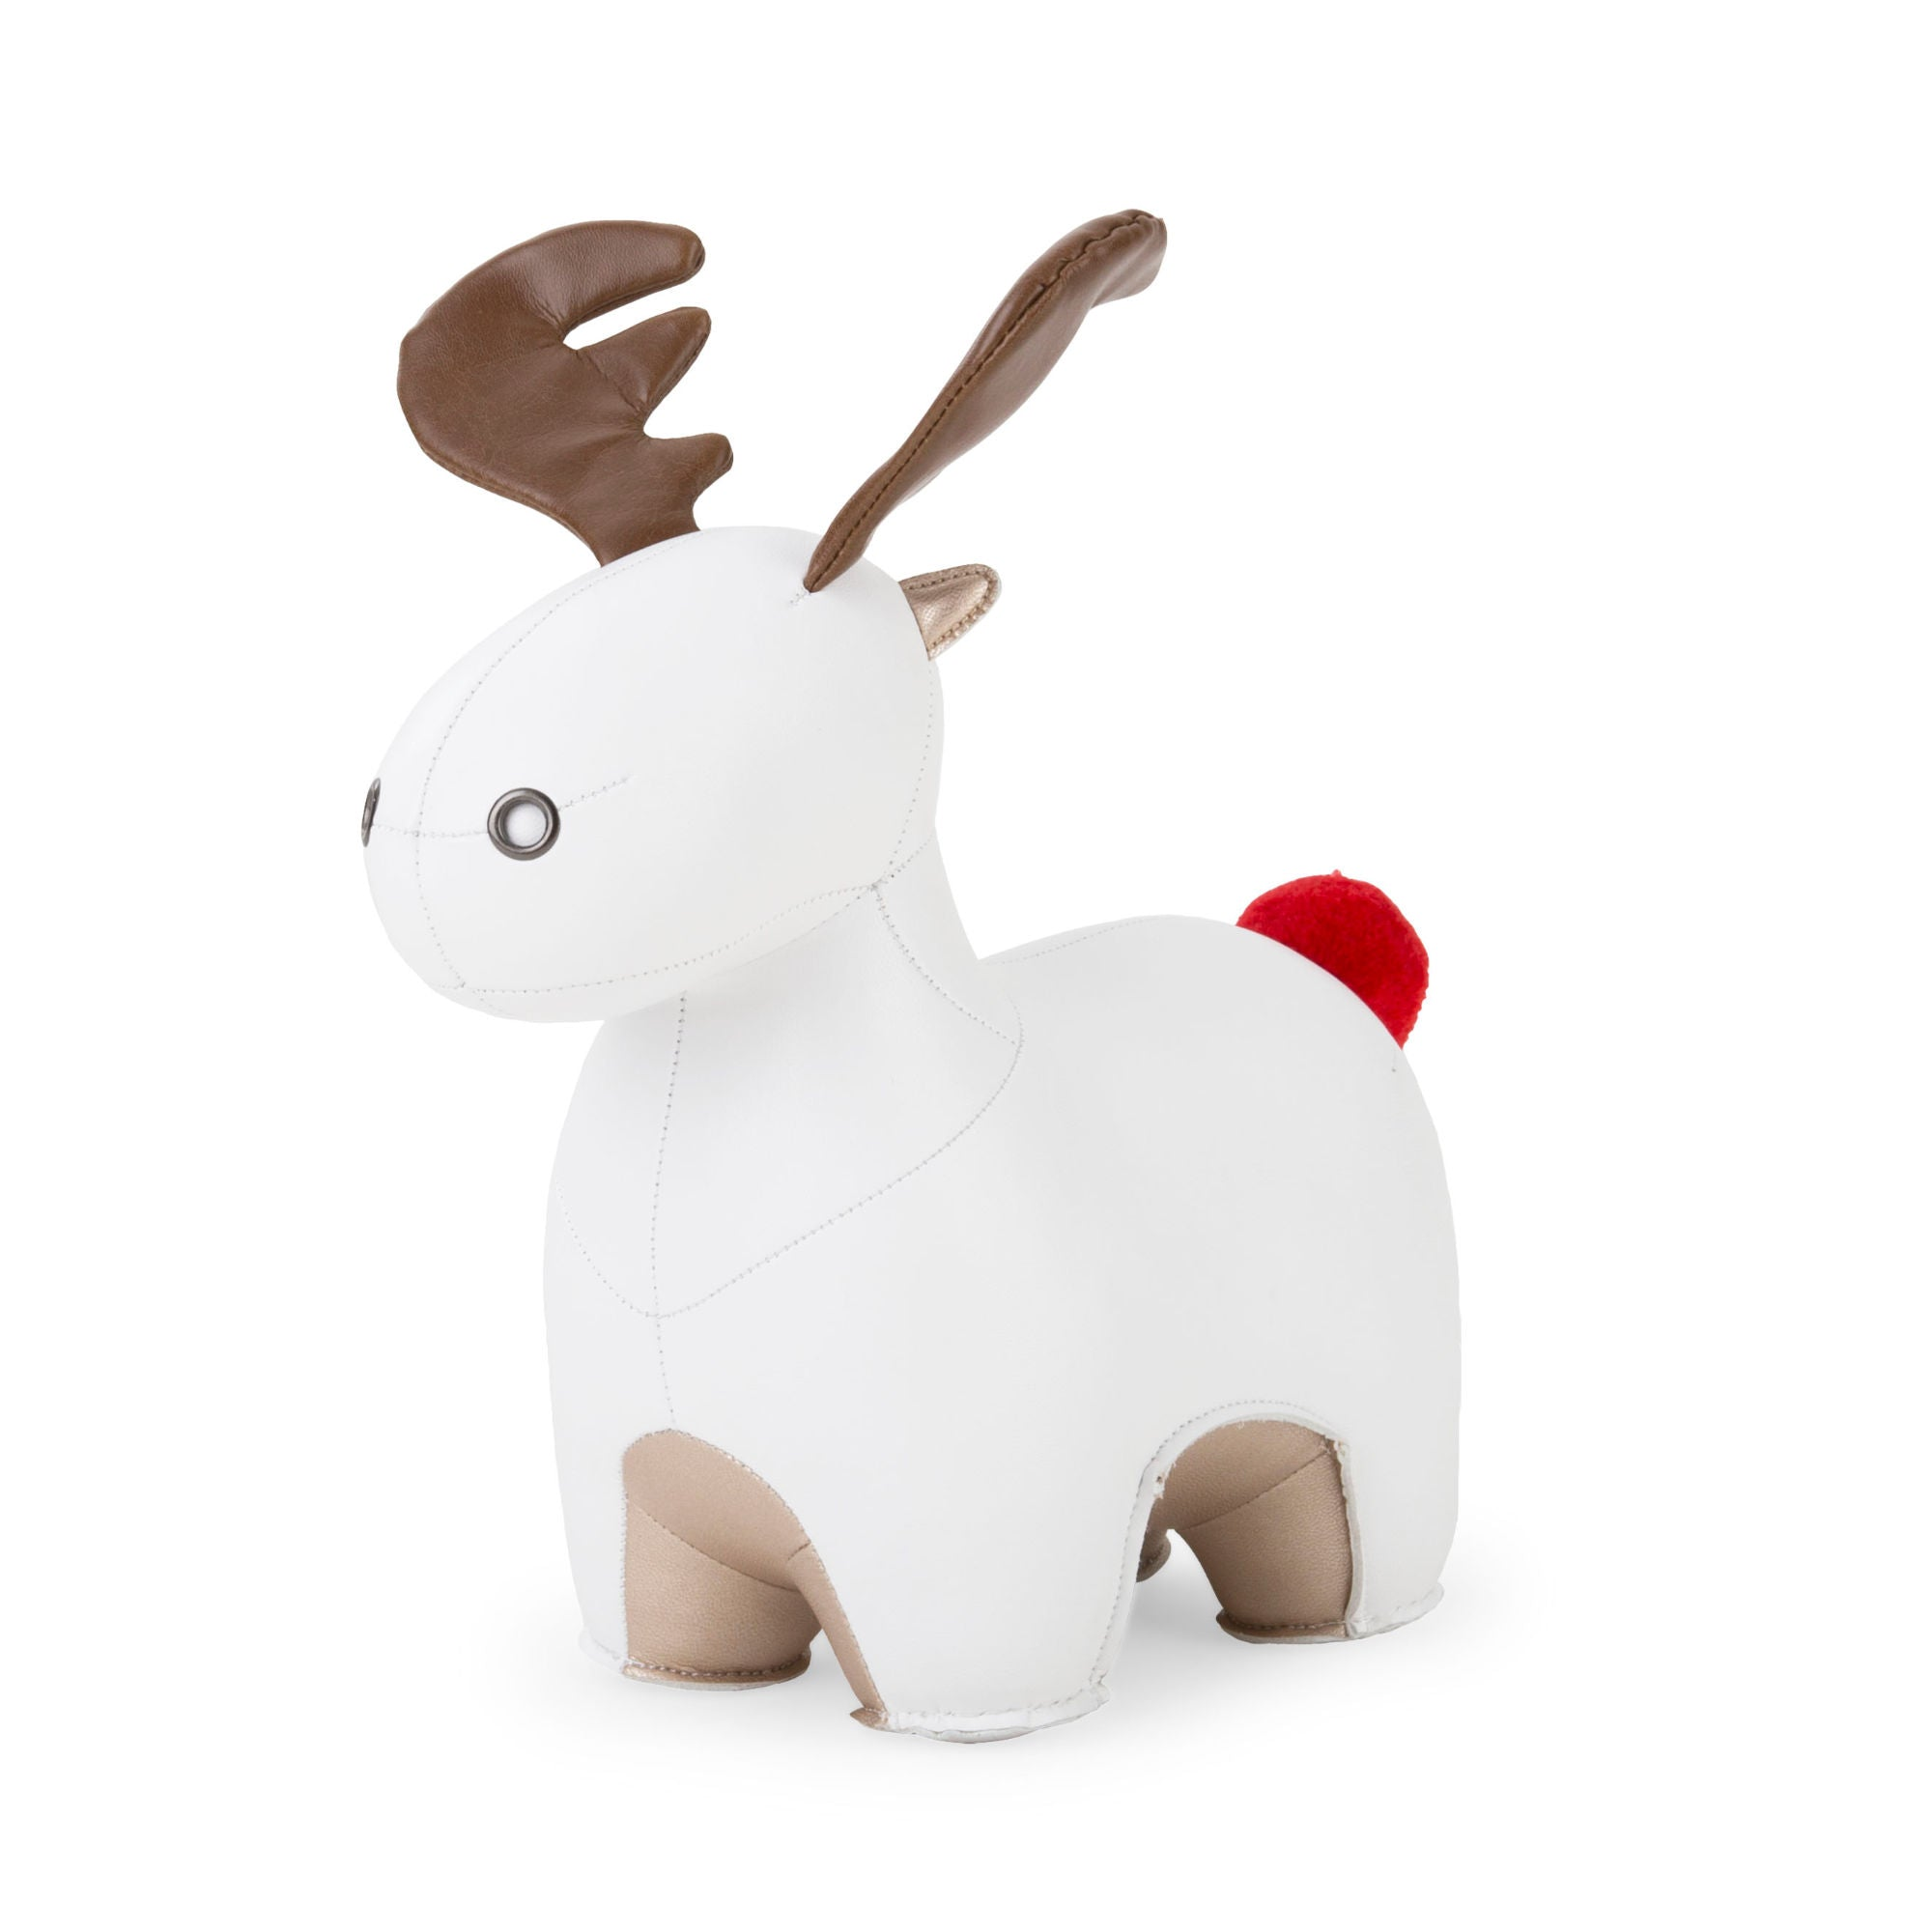 Zuny Red Pom Pom Moose Rudo bookend , white-pearl gold